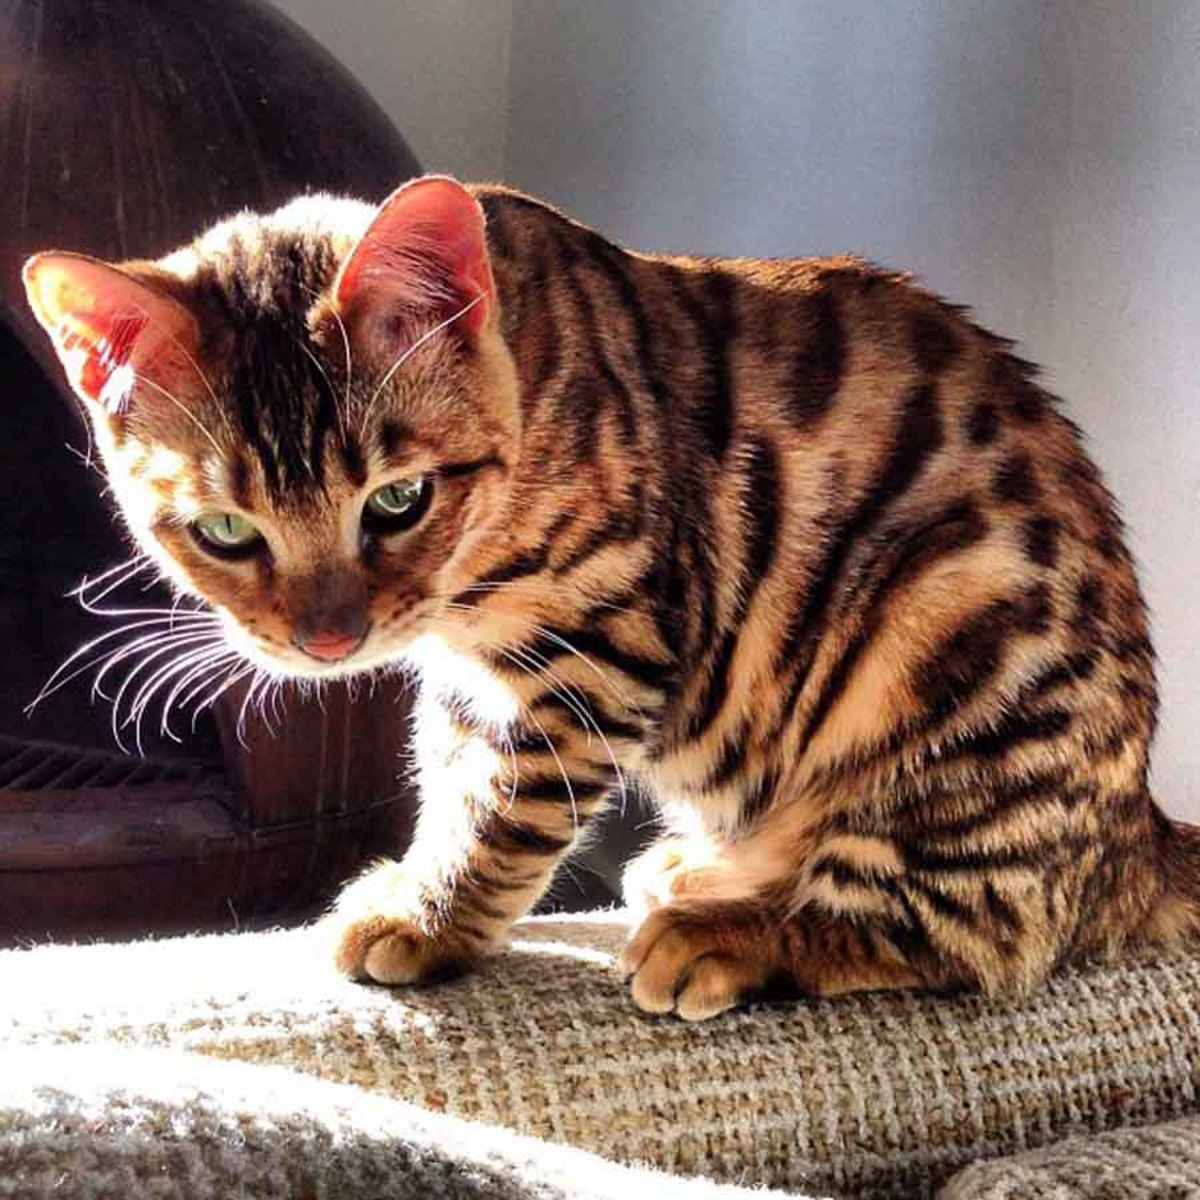 10 Cats That Look Like Tigers, Leopards, and Cheetahs